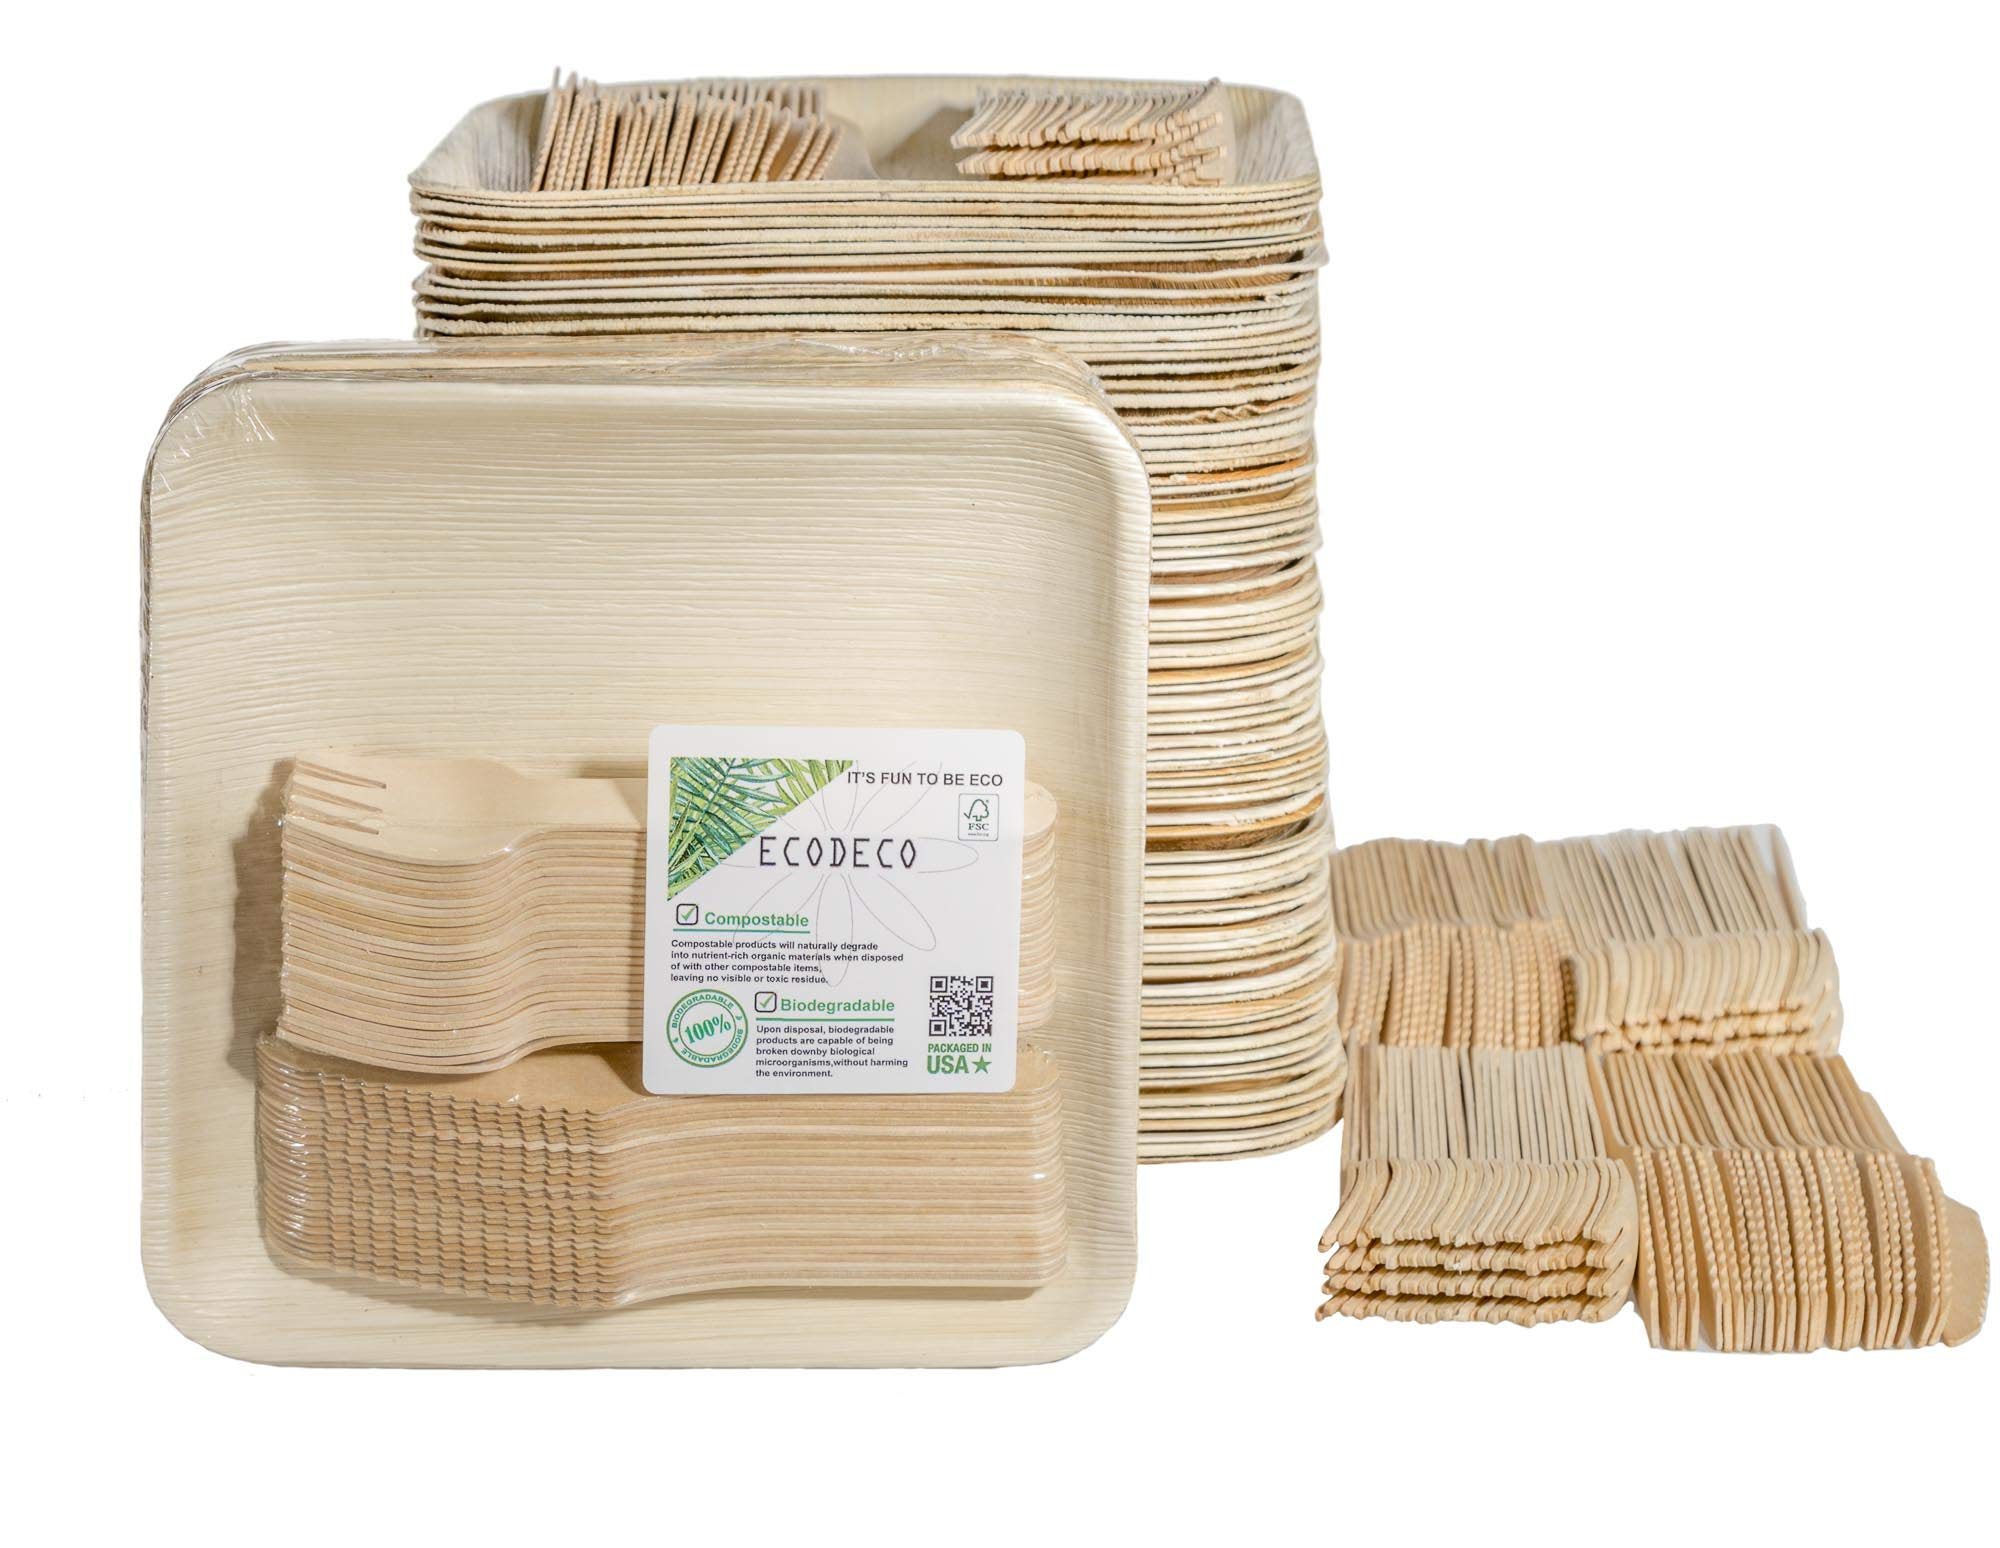 300 PCS Eco Friendly Disposable Dinnerware Set - 100 Palm Leaf Compostable 8'' Plates w/Wooden Cutlery - 100 Forks 100 Knives for Party by ECODECO (Image #1)